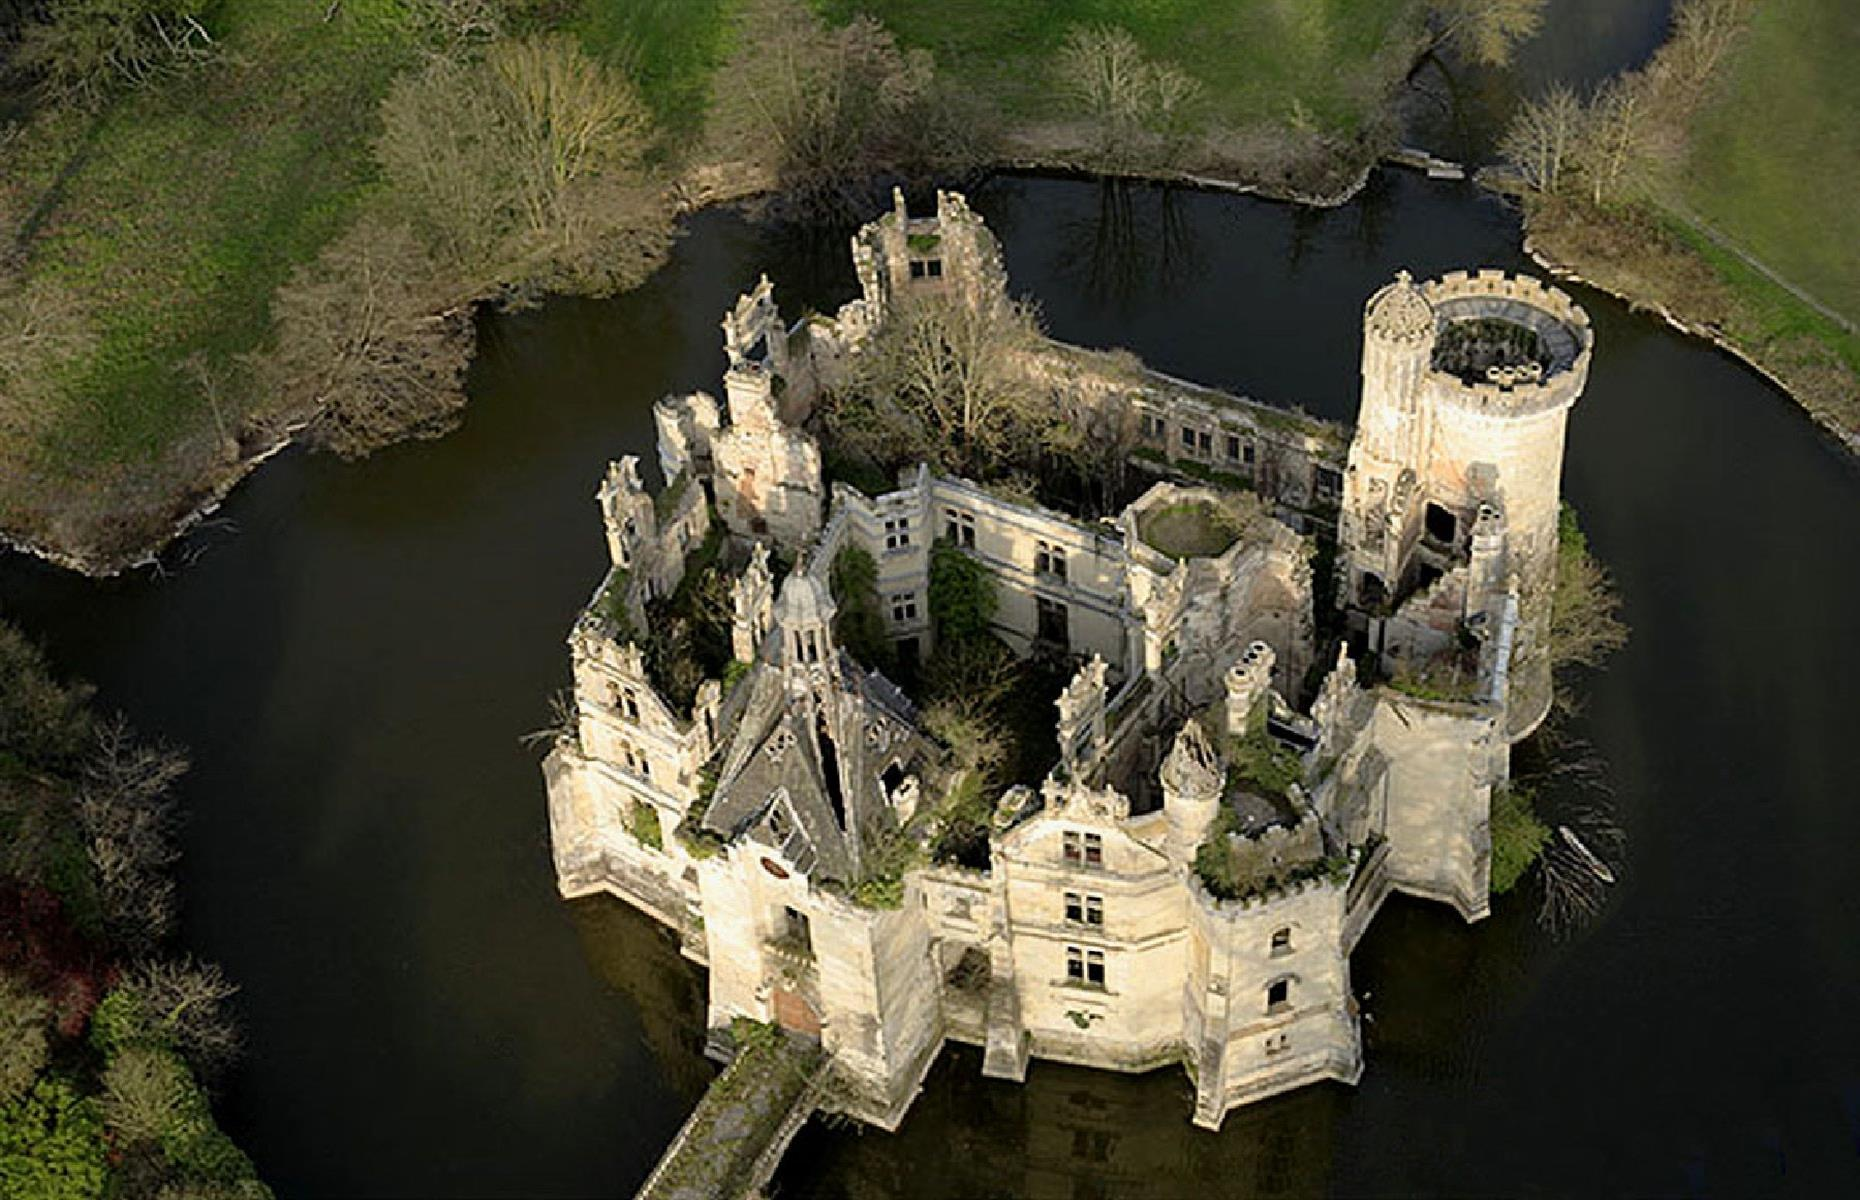 Slide 23 of 29: However, there's a happy ending for this exquisite château. In 2017, it was saved from demolition by the generosity of strangers. More than 7,400 people donated to a crowdfunding campaign to rescue the beautiful structure. Maybe one day it will be restored to its former glory.